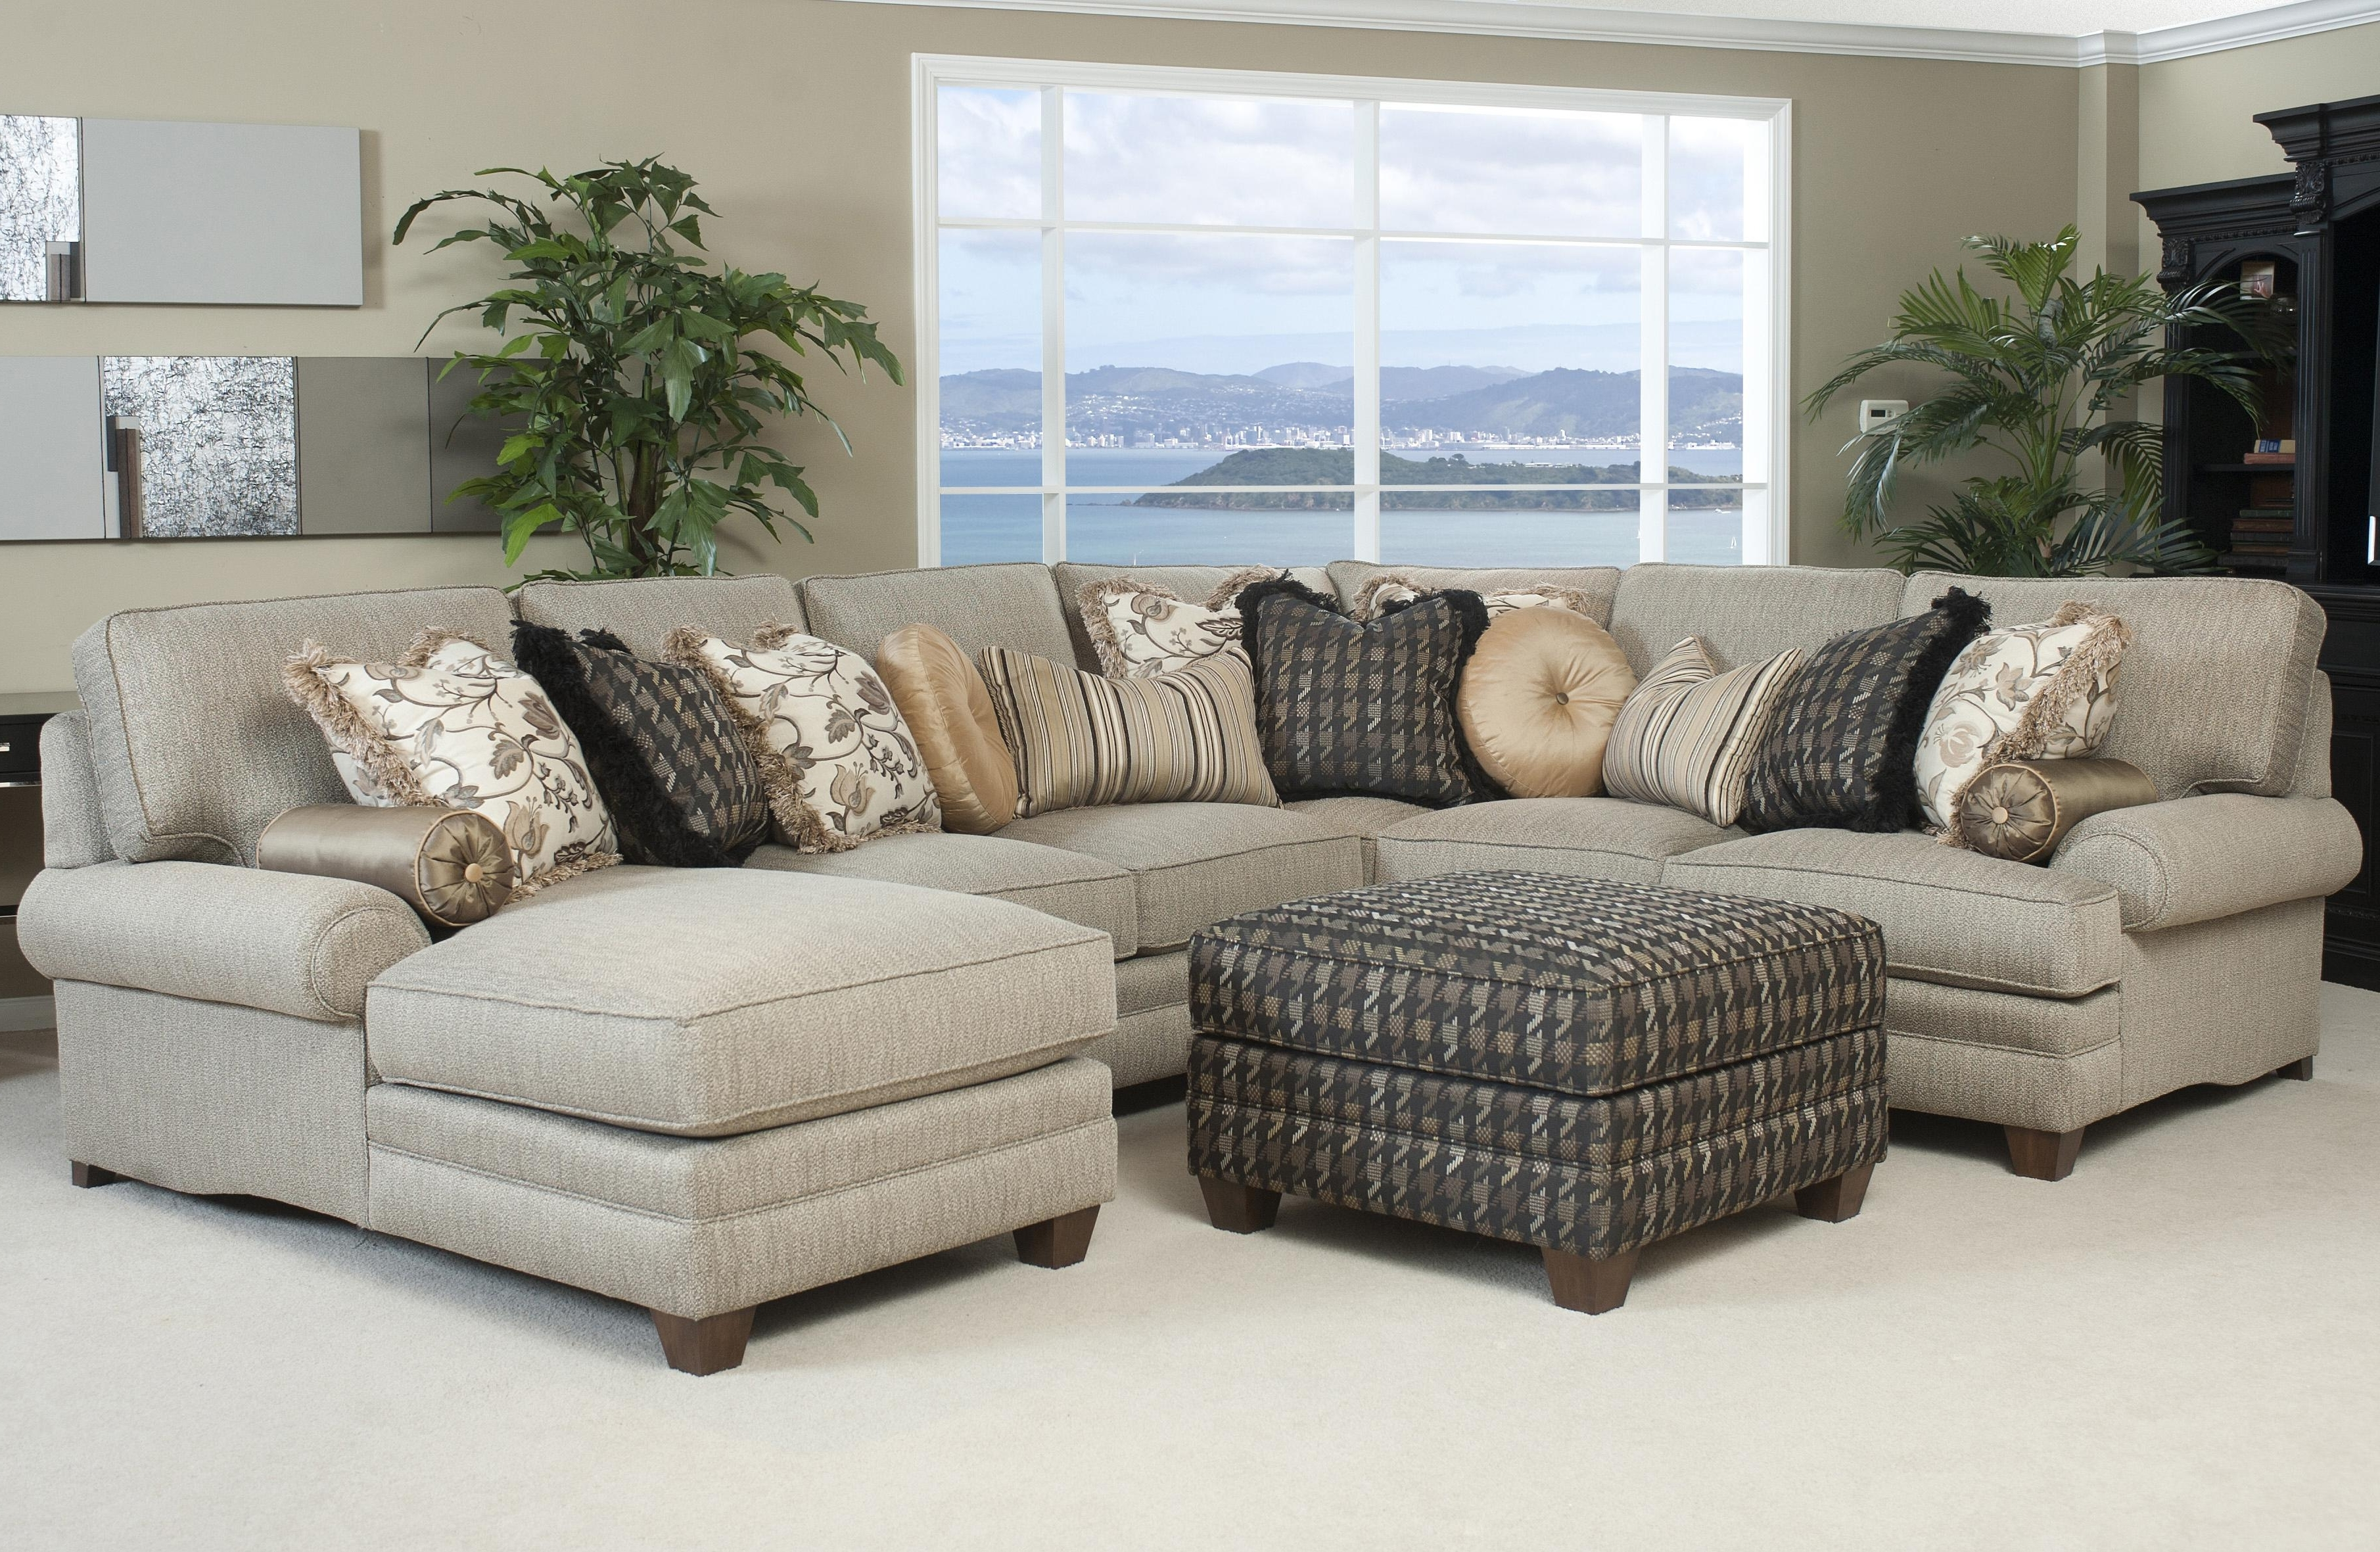 2018 Quality Sectional Sofas With Regard To Large Sectional Sofa With Ottoman (View 13 of 15)